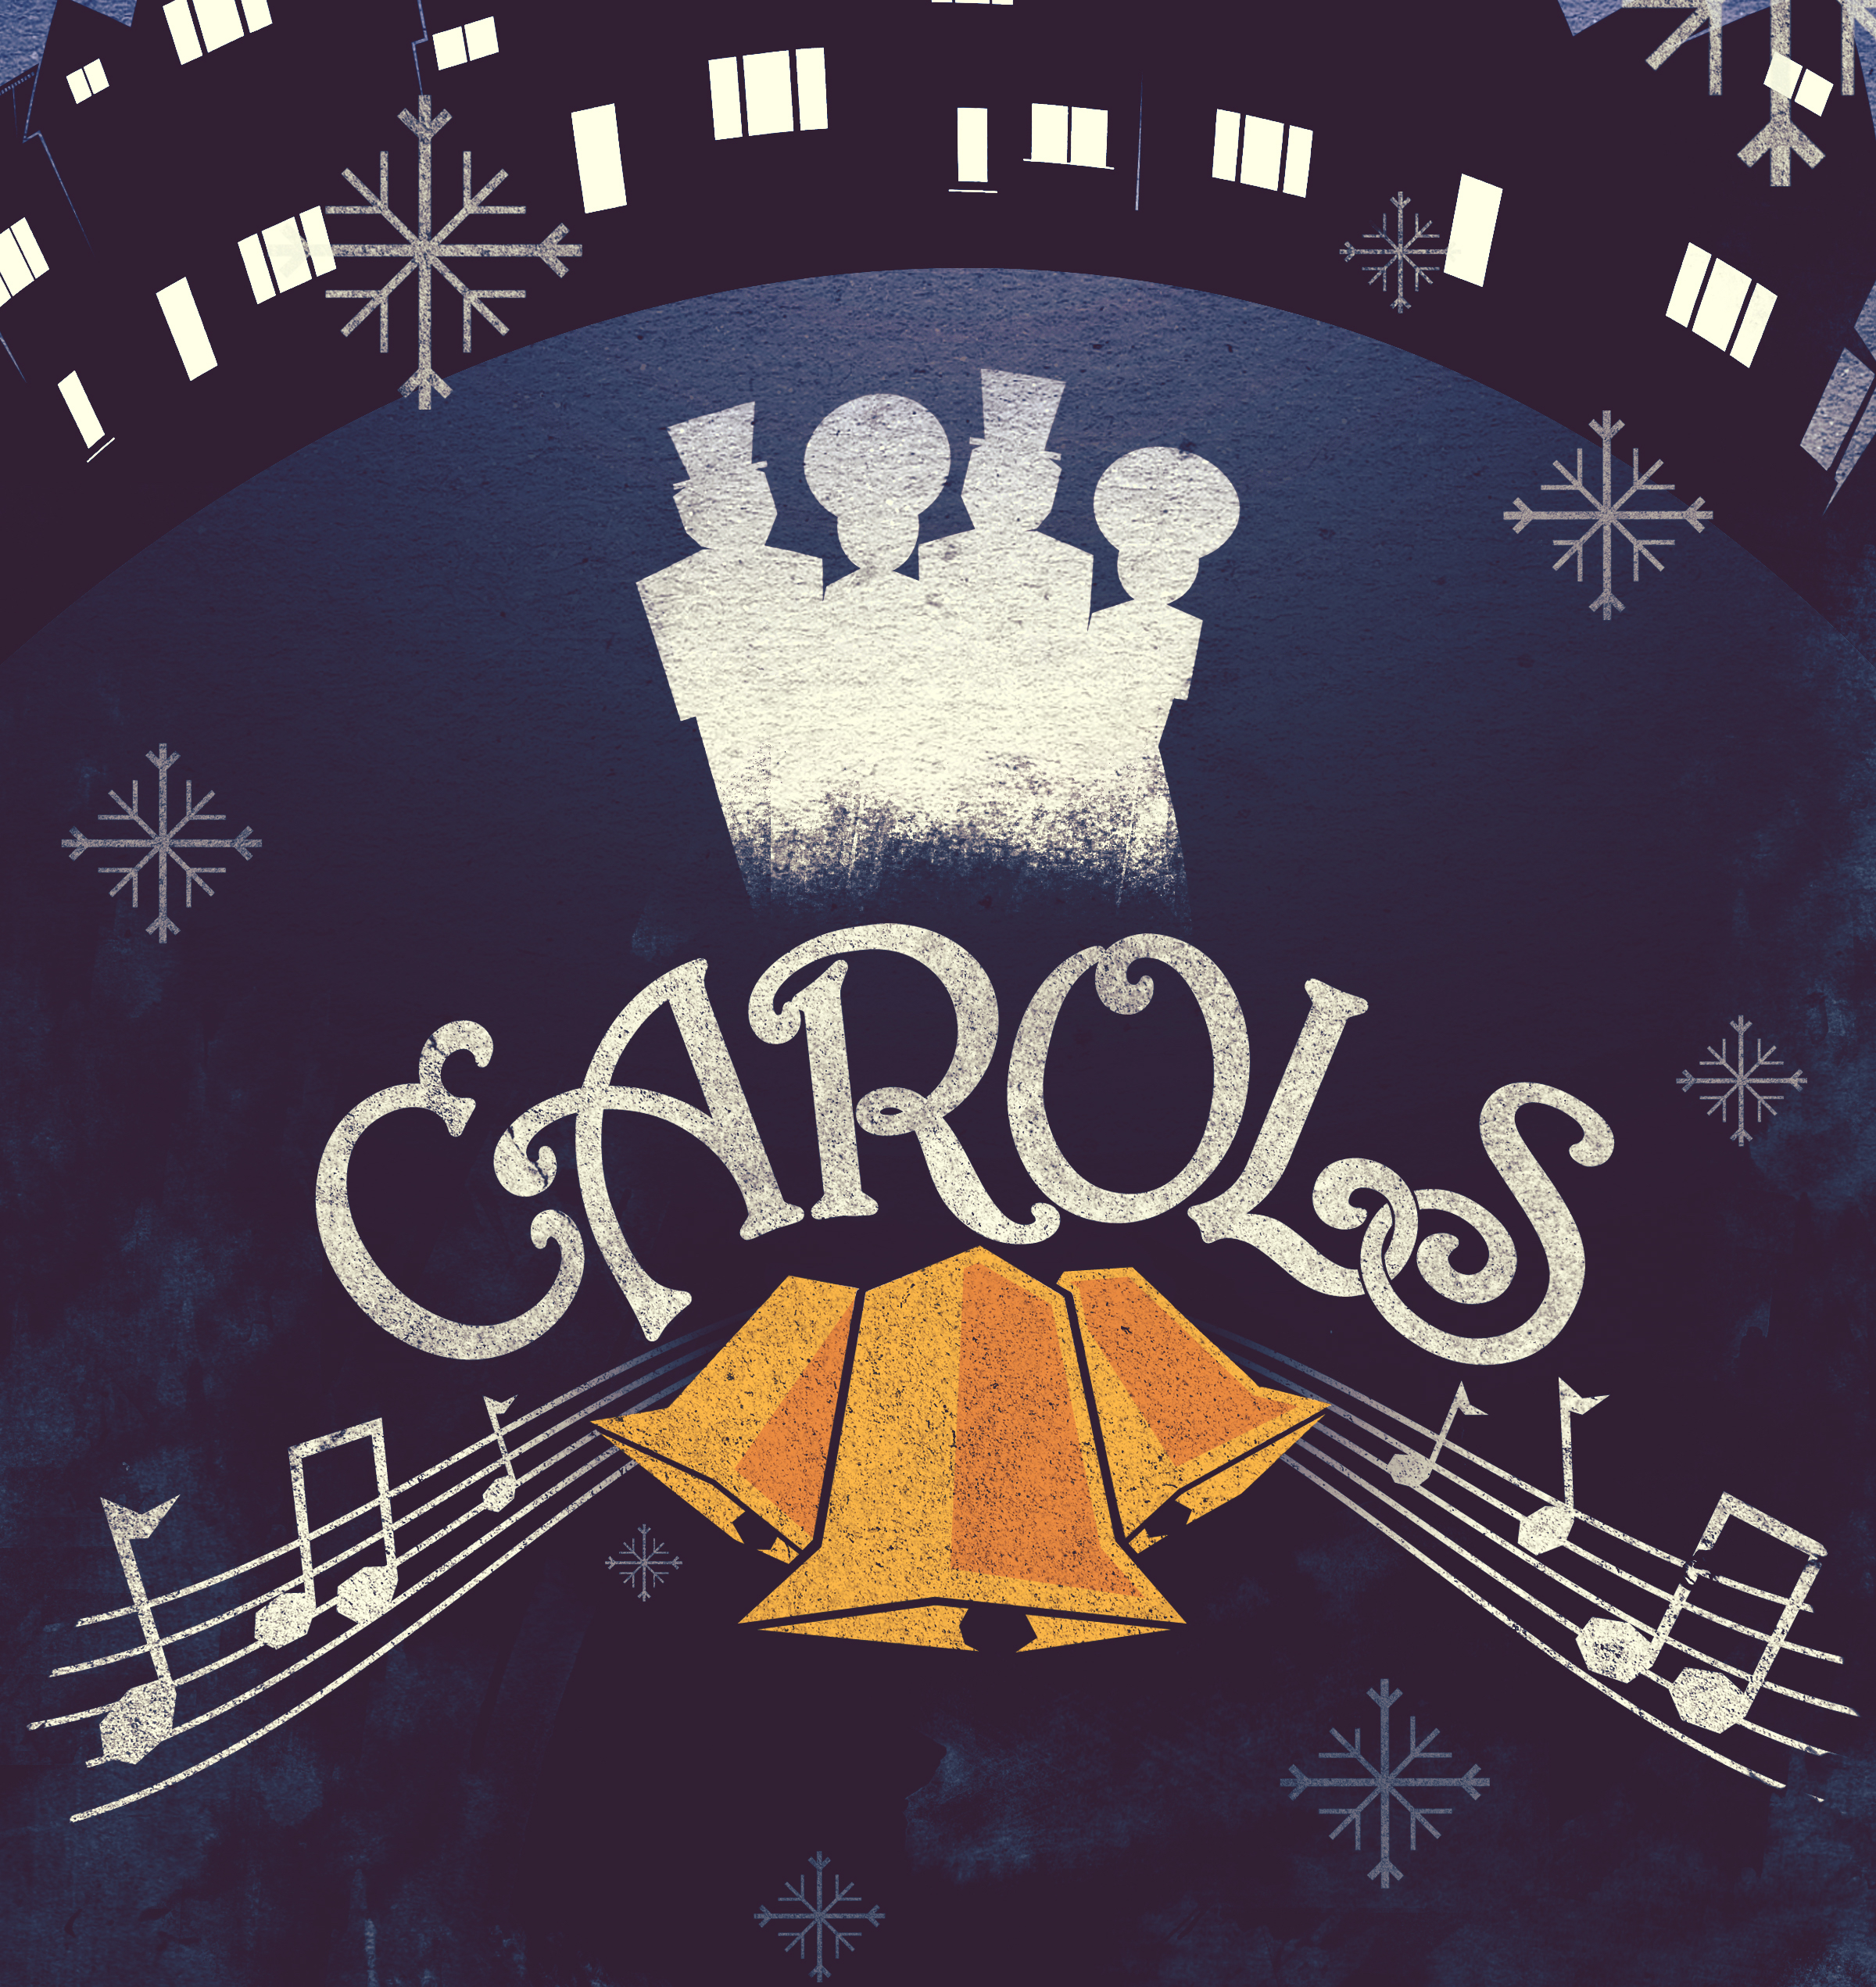 Carols Christmas Album and Stems